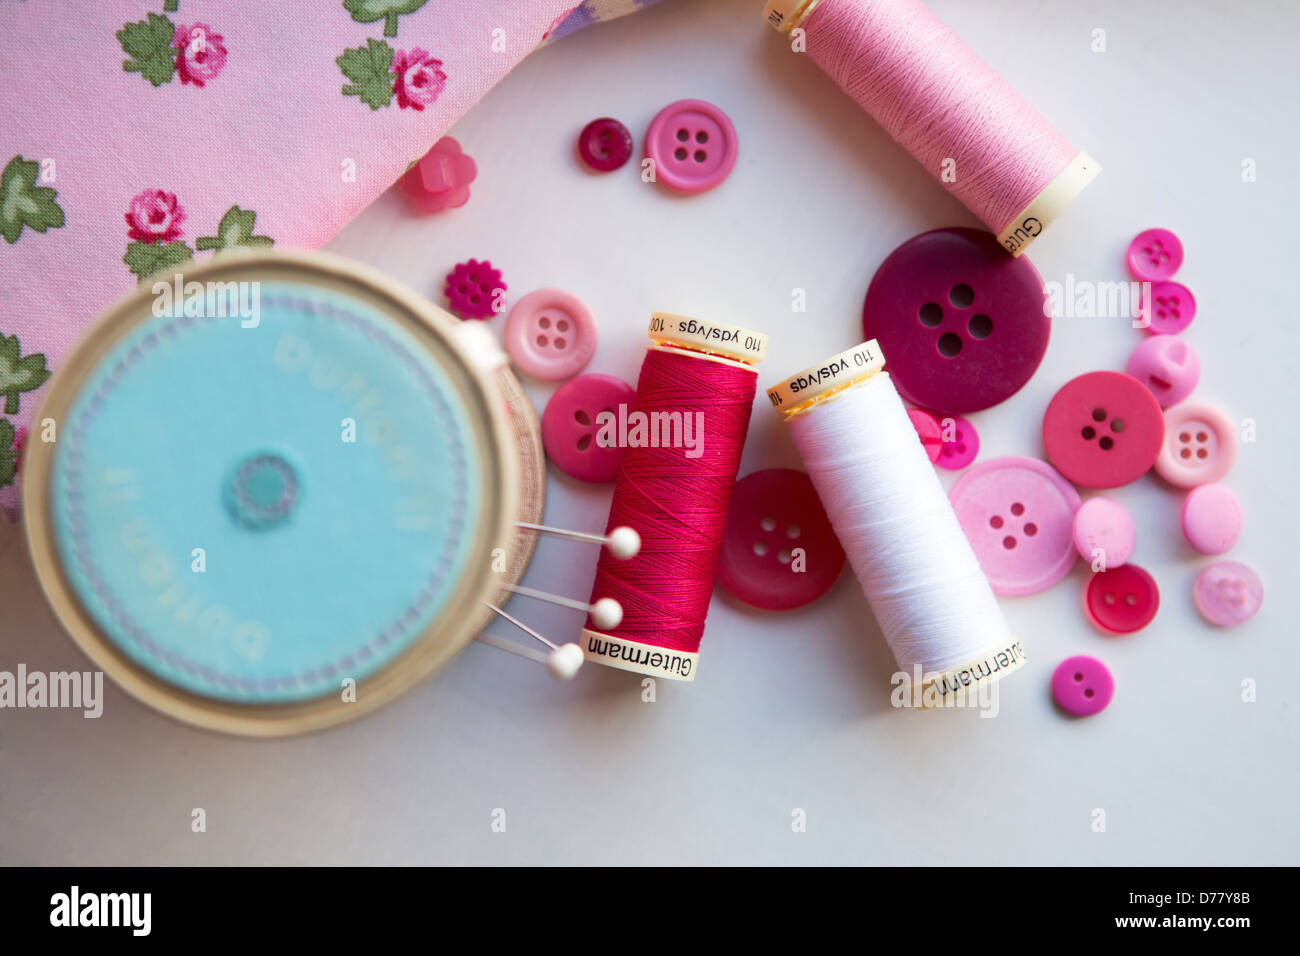 A sewing kit of thread, pins, pin cushion, fabric and